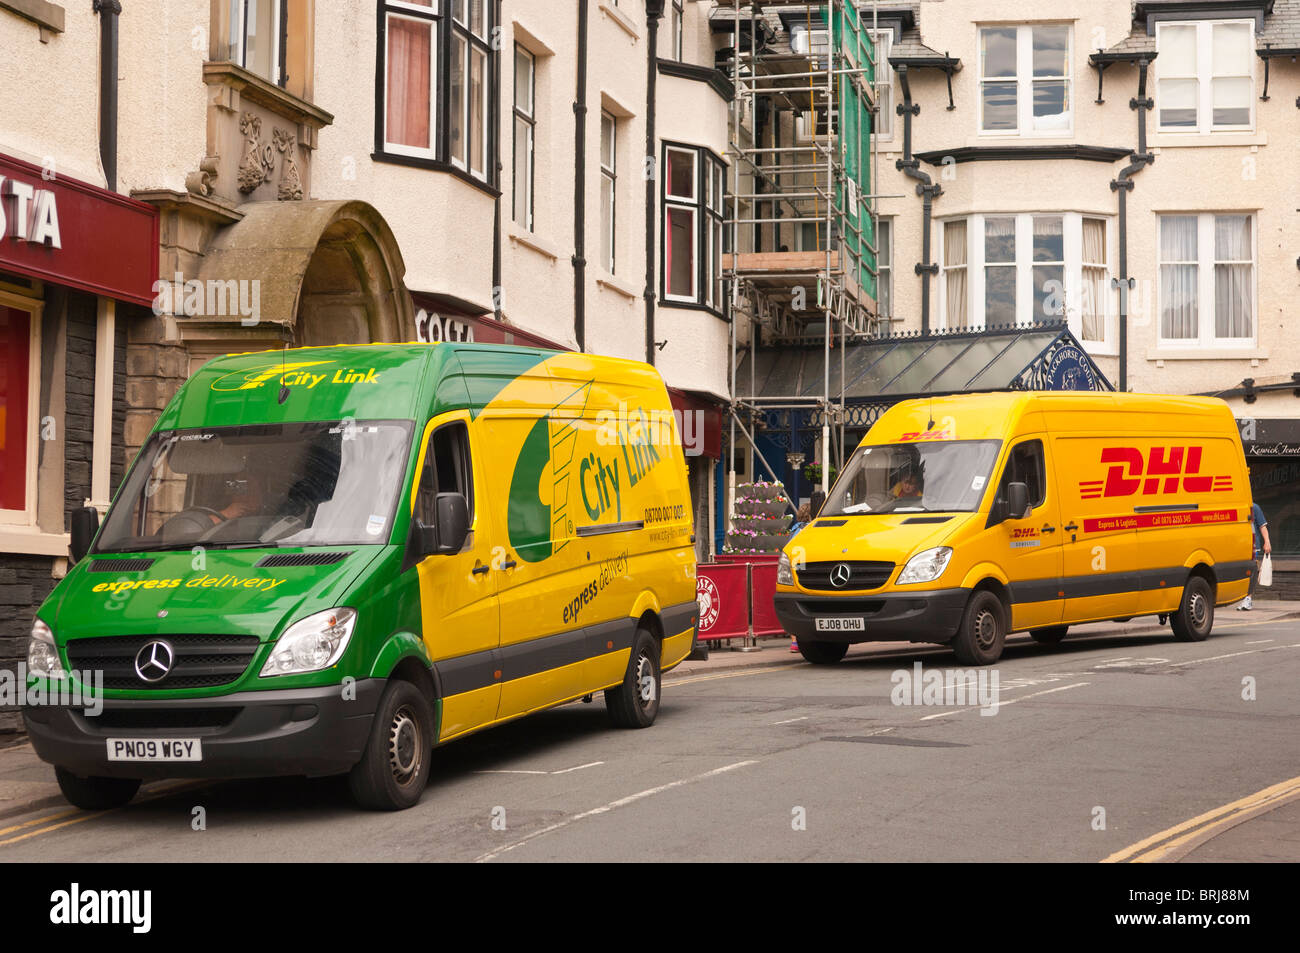 Dhl Vans High Resolution Stock Photography and Images Alamy